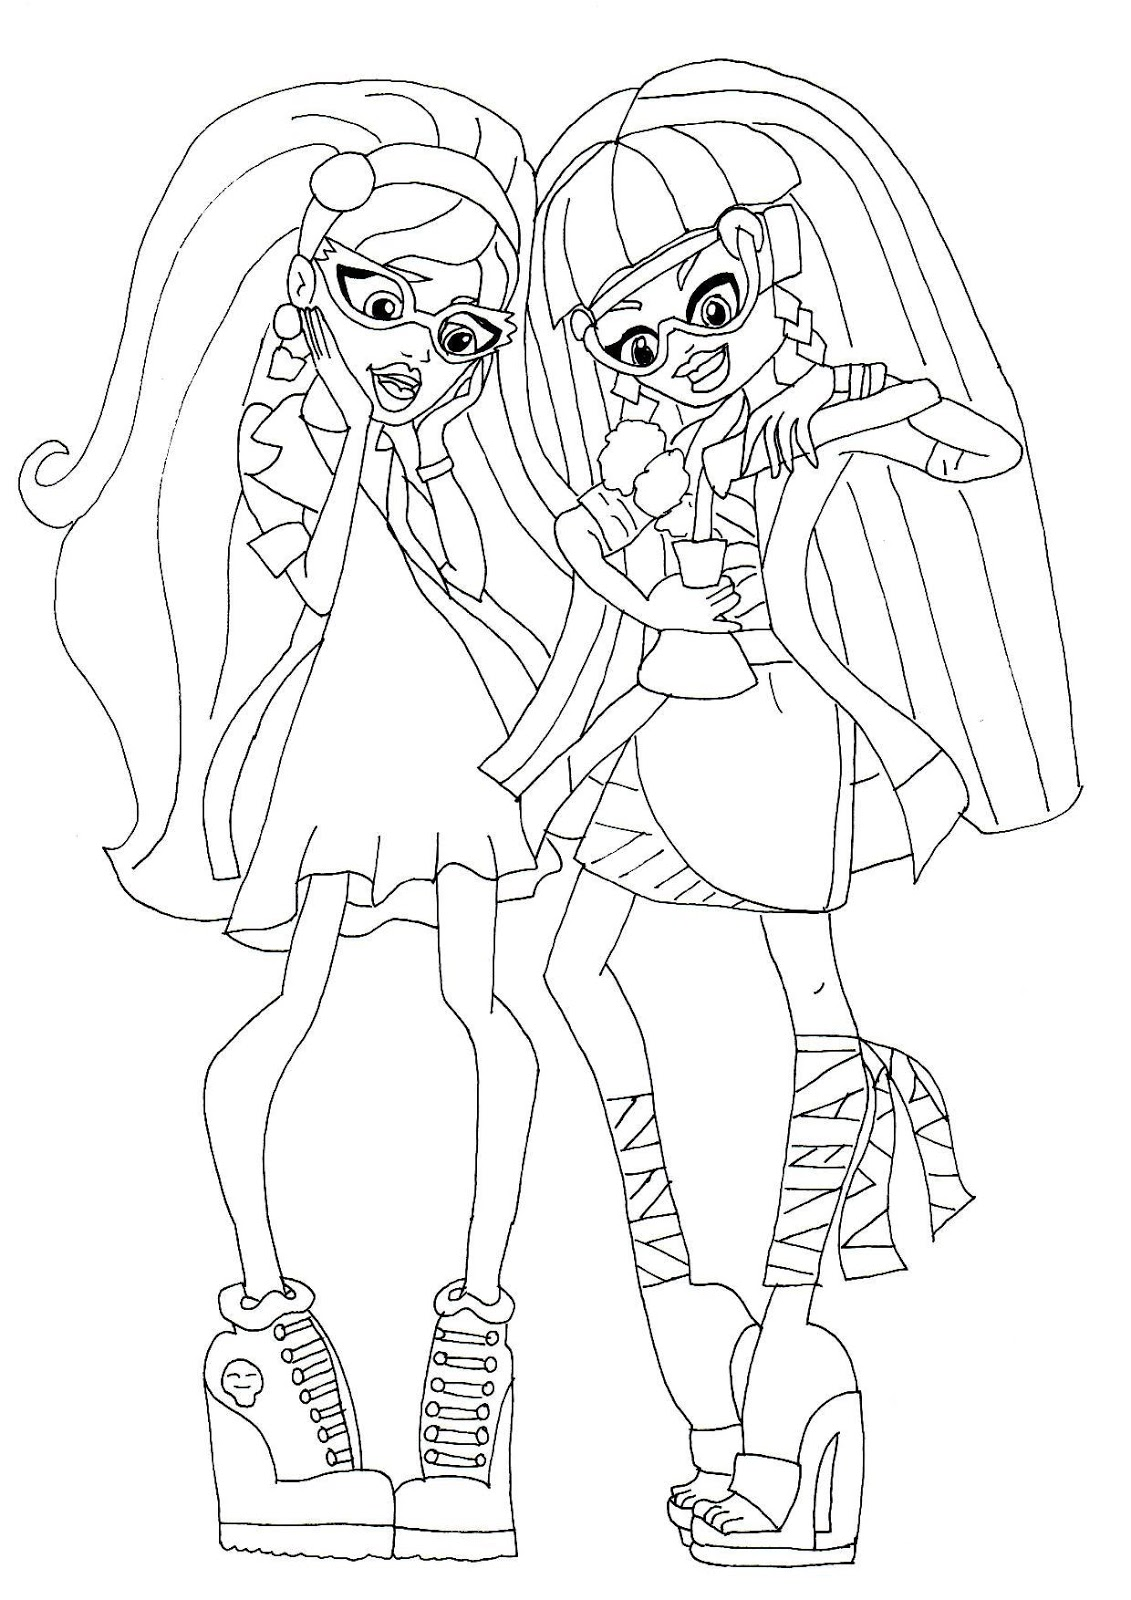 Free Printable Monster High Coloring Pages: Cleo and Ghoulia Mad ...